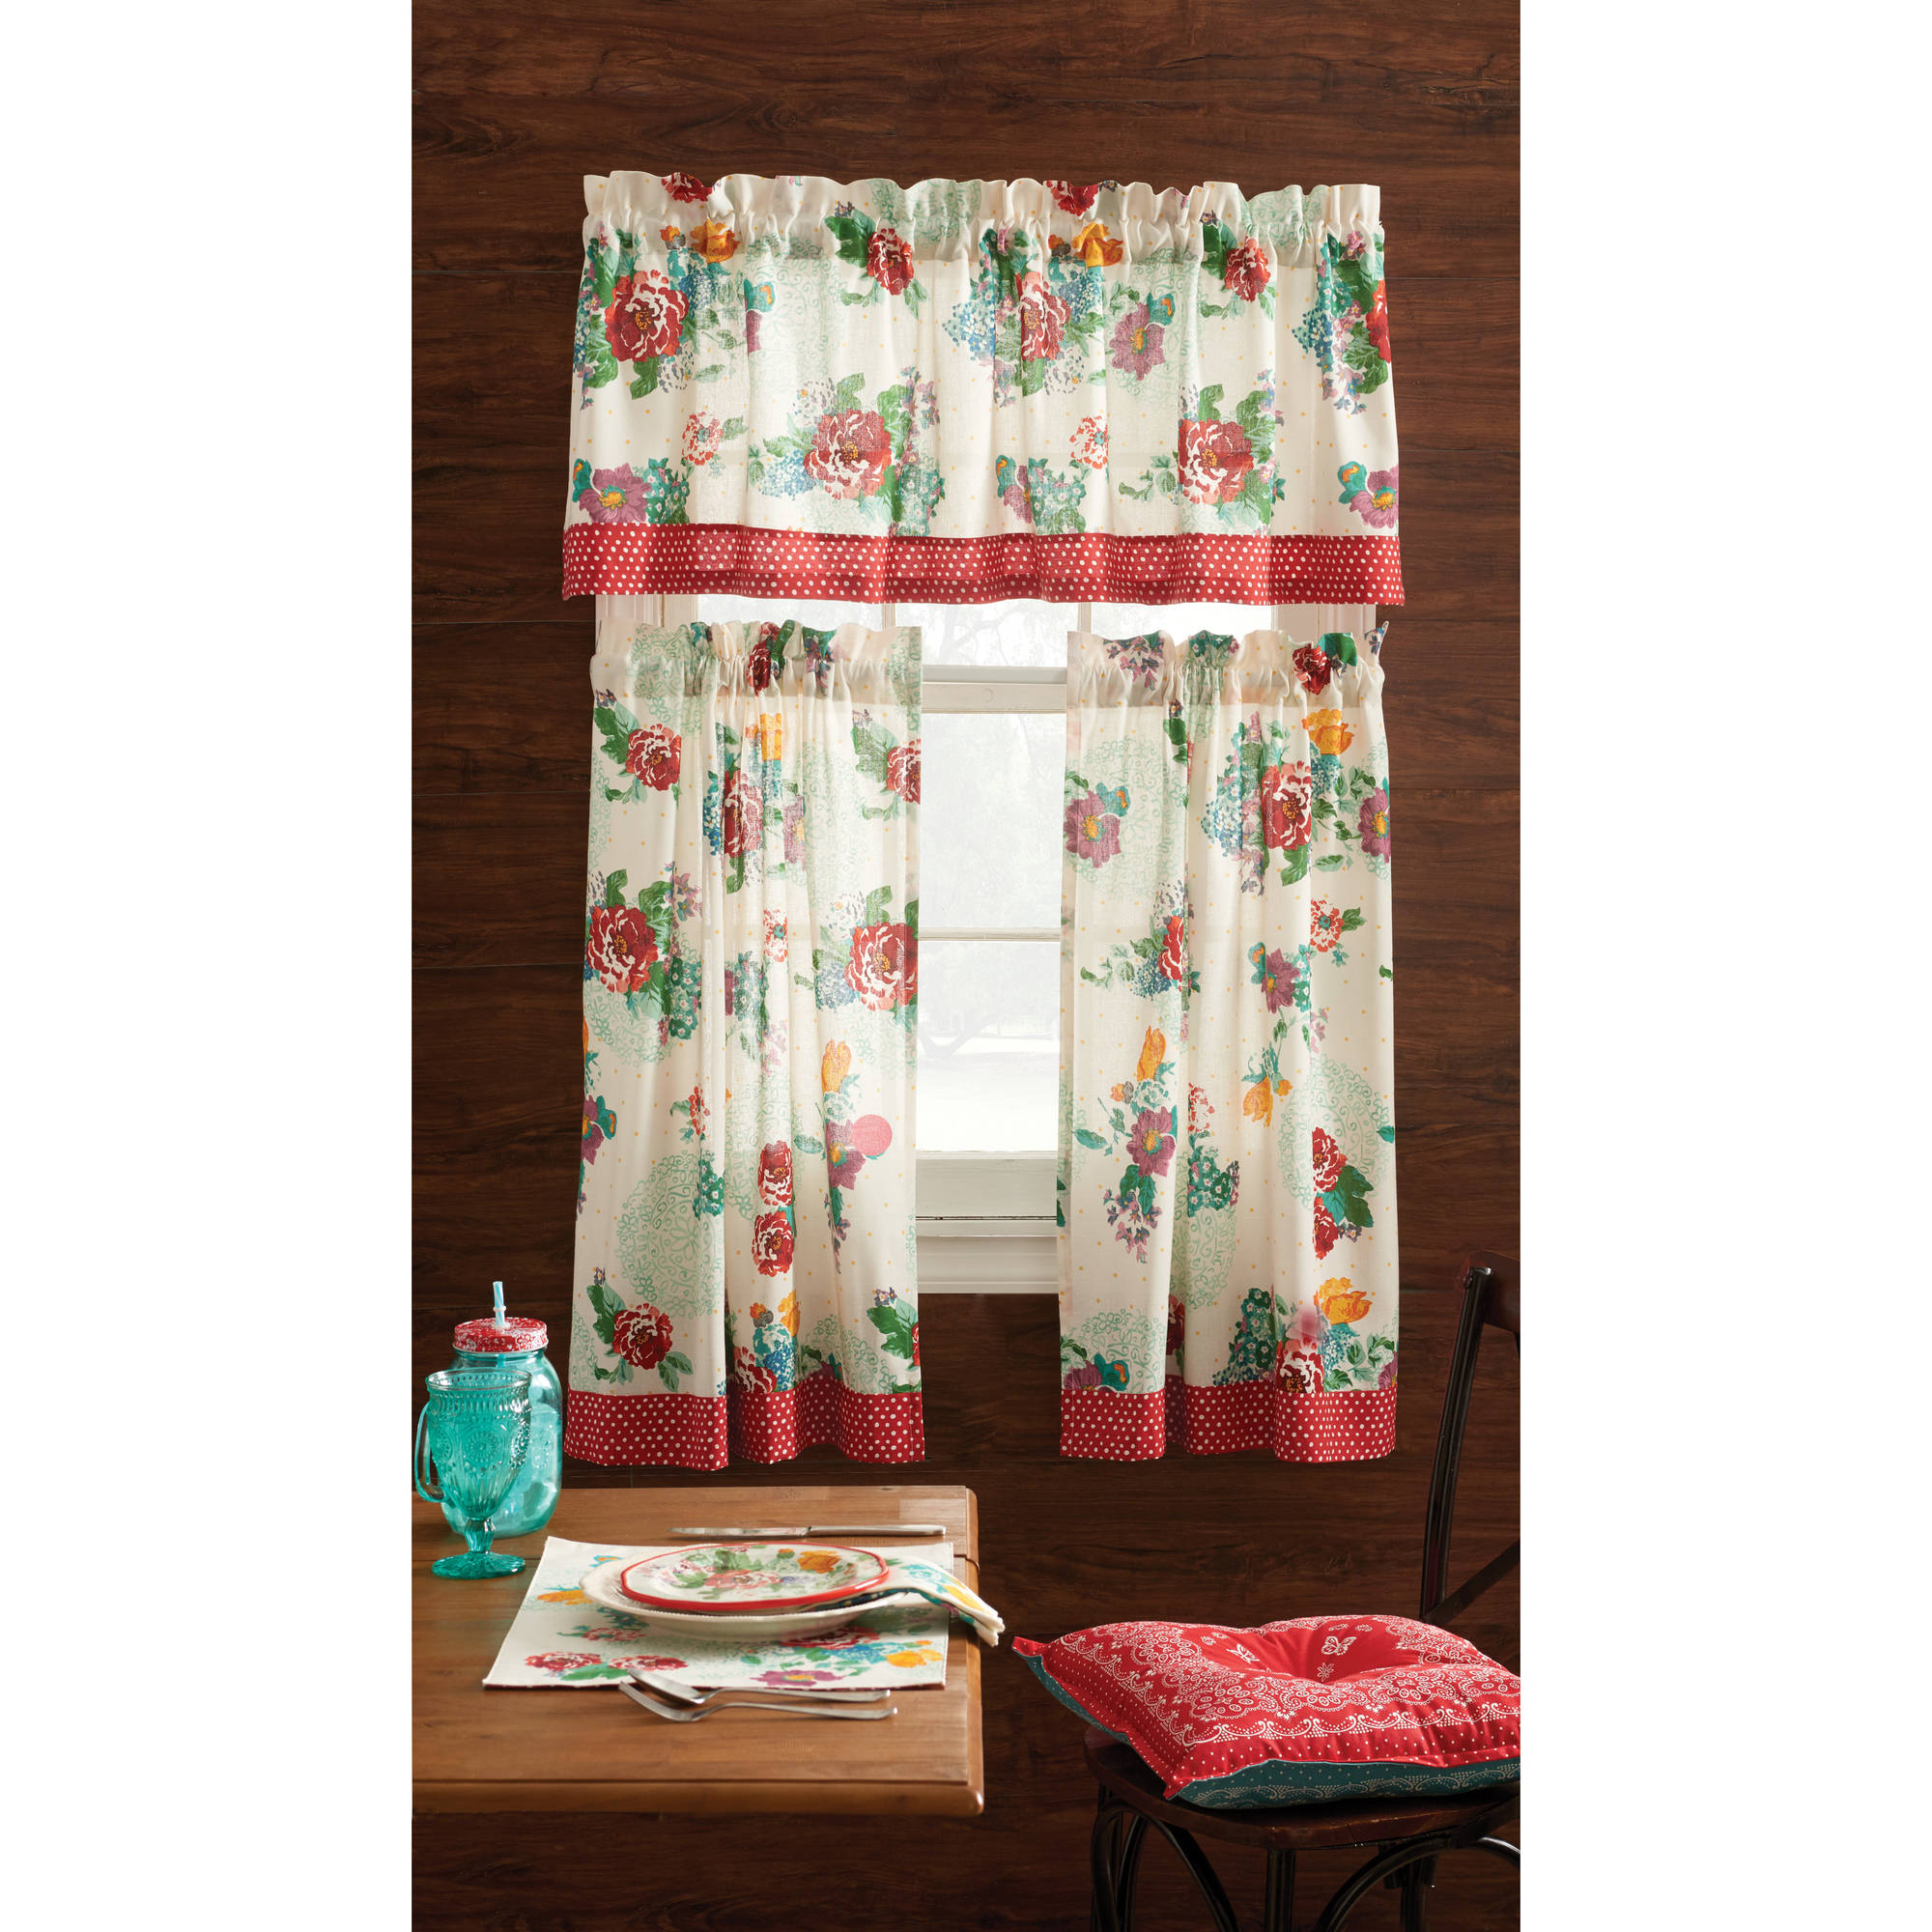 Patterns For Kitchen Curtains And Valances The Pioneer Woman Country Garden 3 Piece Kitchen Curtain Tier And Valance Set